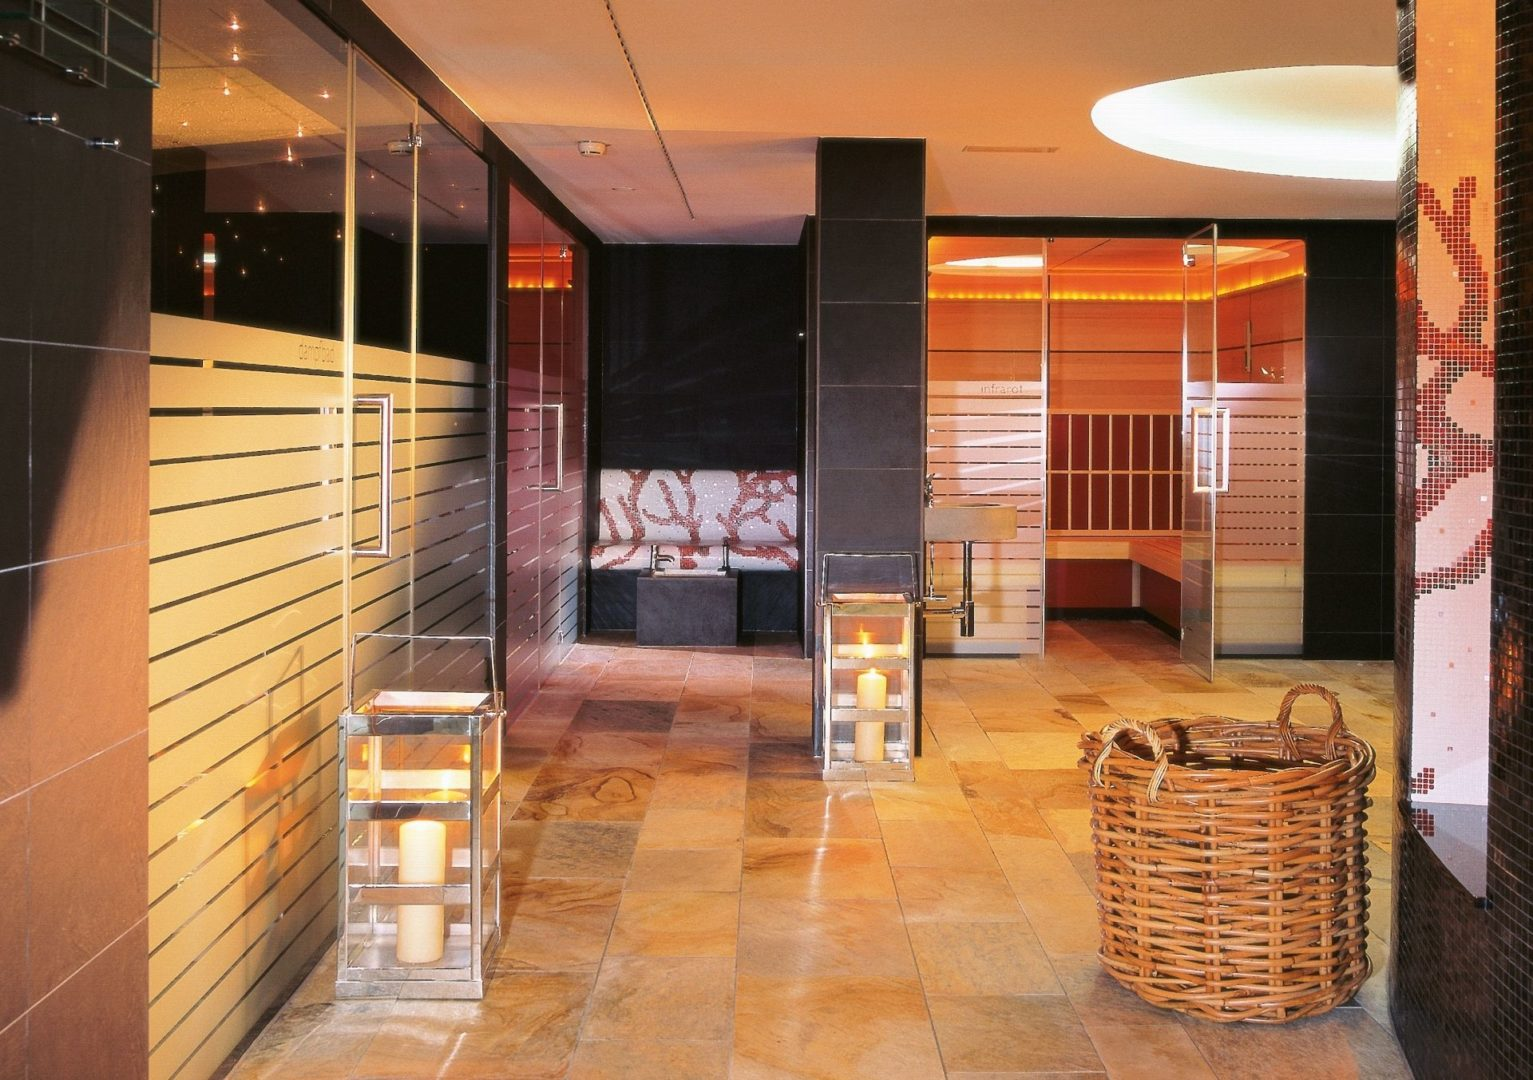 The Senses spa sauna and steam room